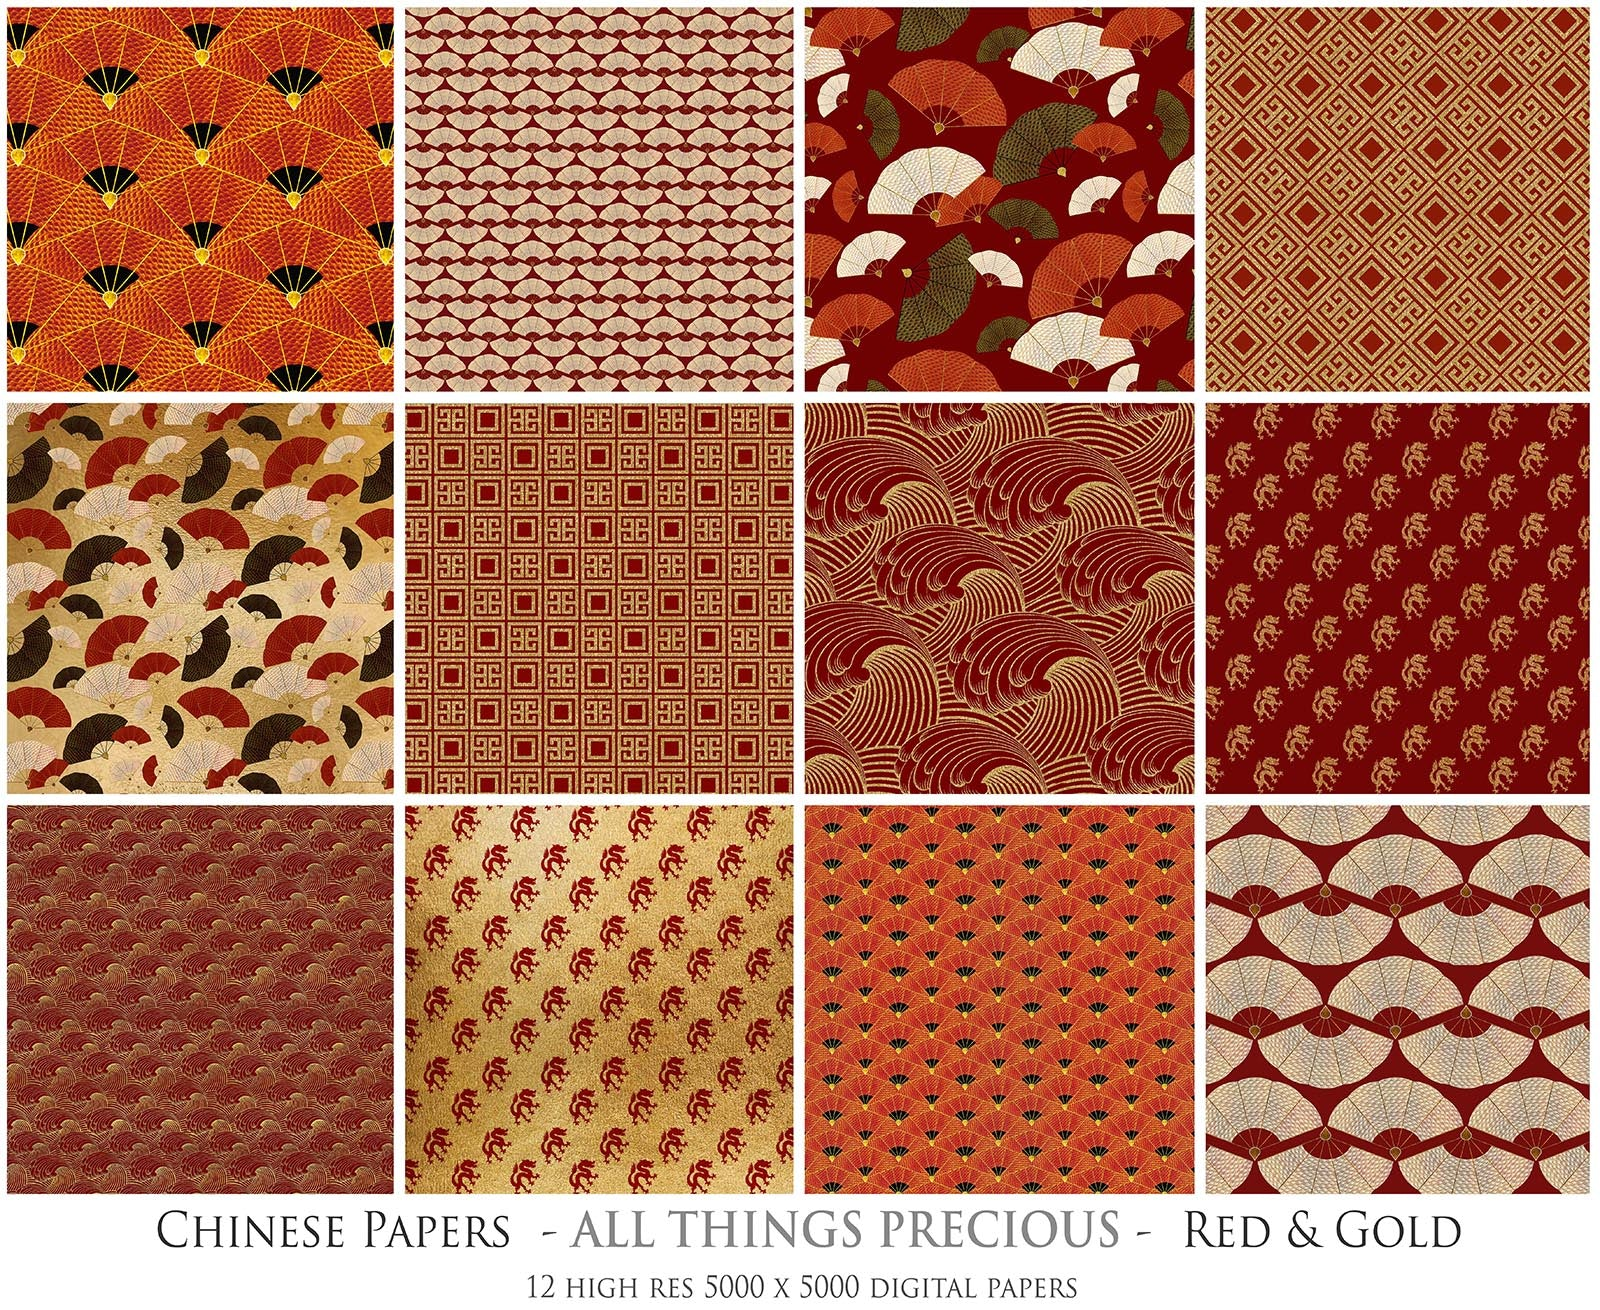 CHINESE PATTERN - GOLD & RED Digital Papers Set 2